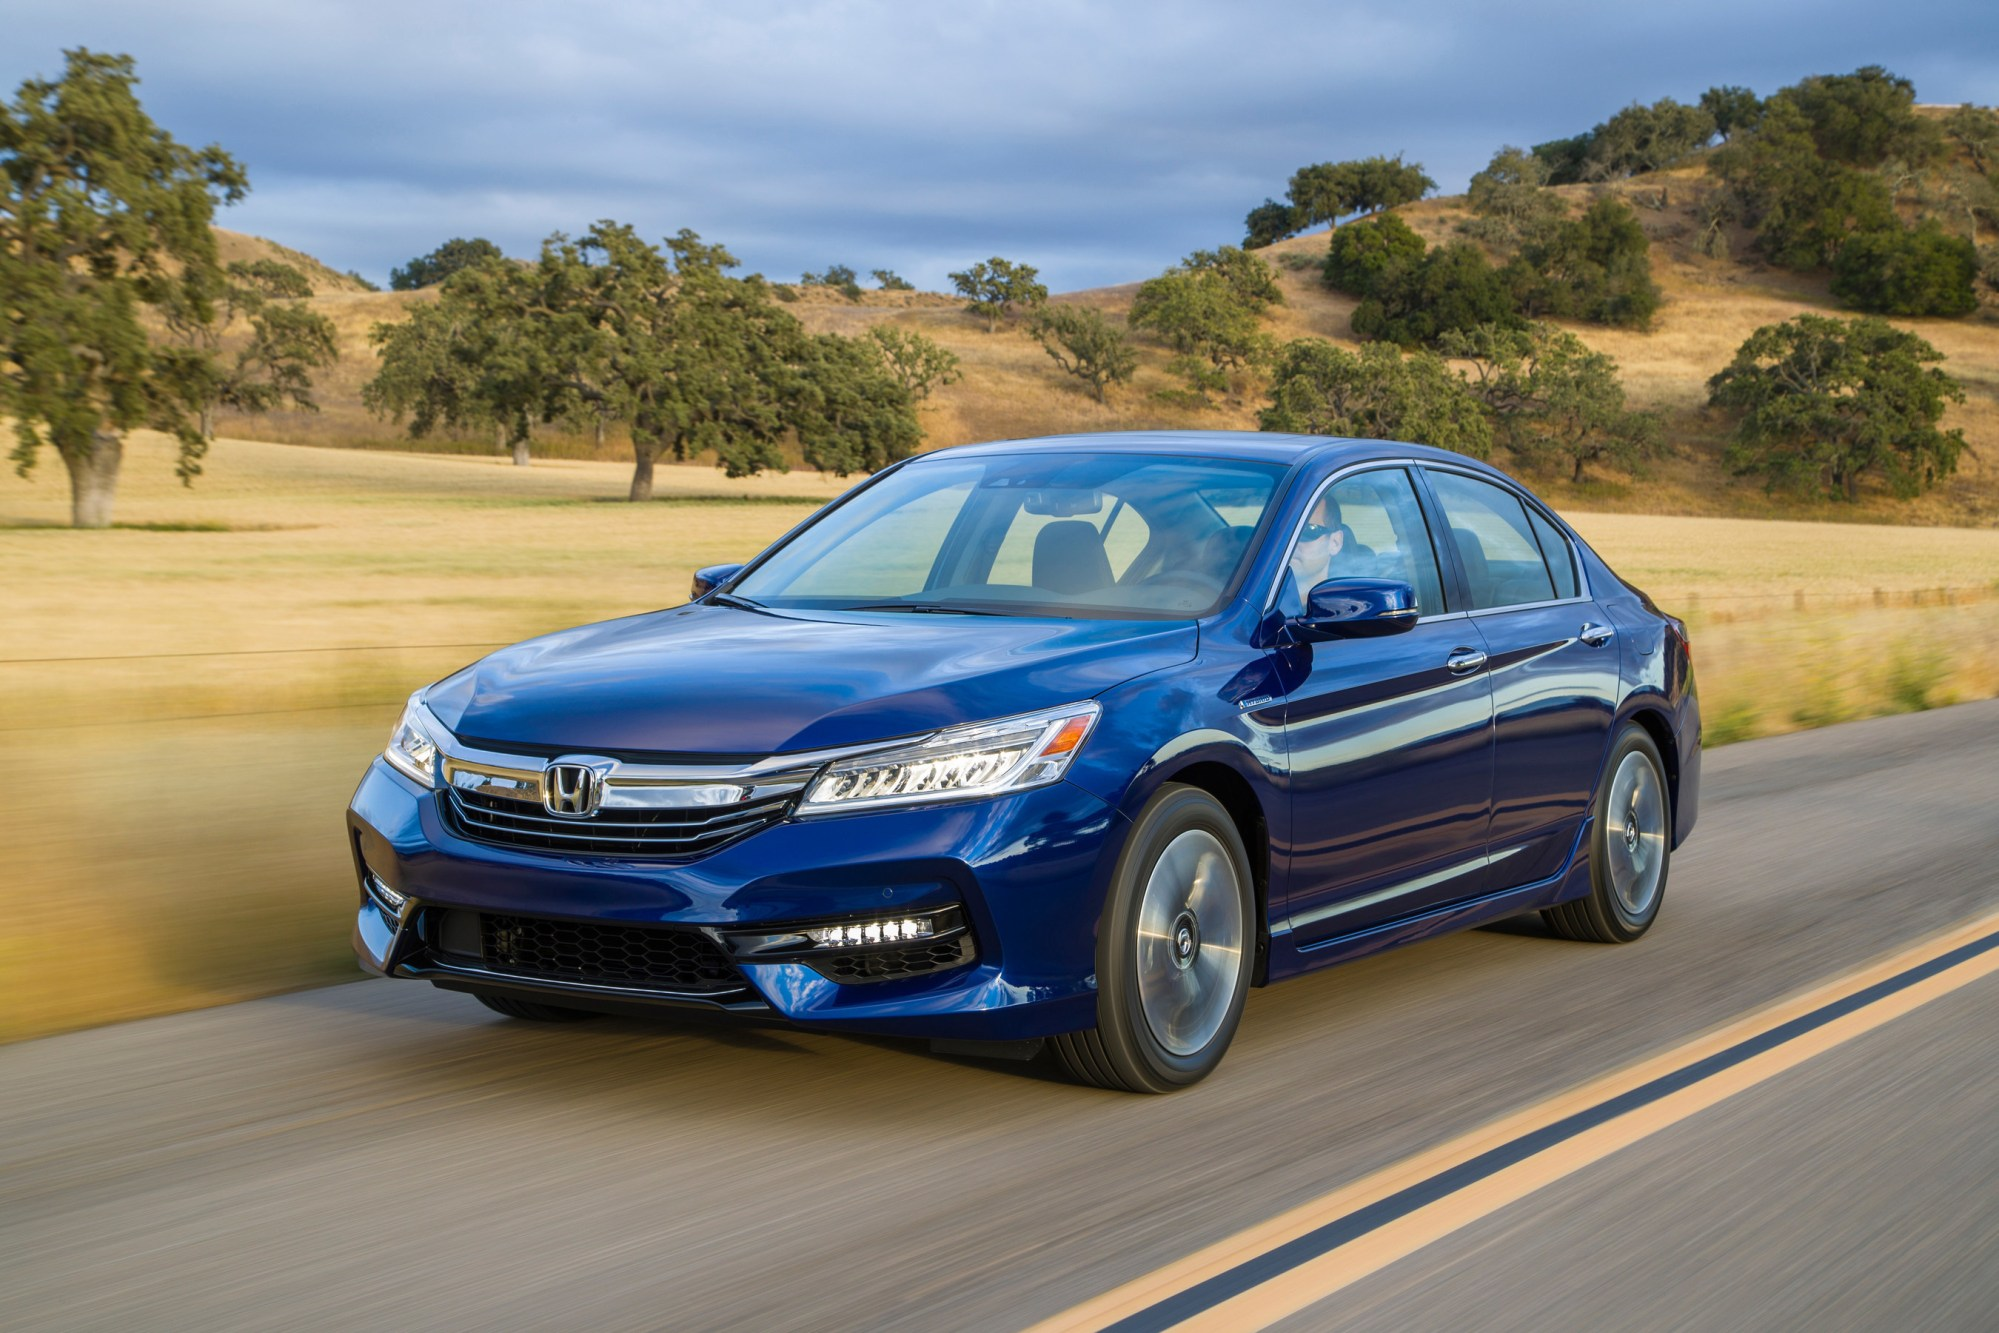 hight resolution of honda launches 2017 accord hybrid america s most sophisticated powerful and fuel efficient midsize hybrid